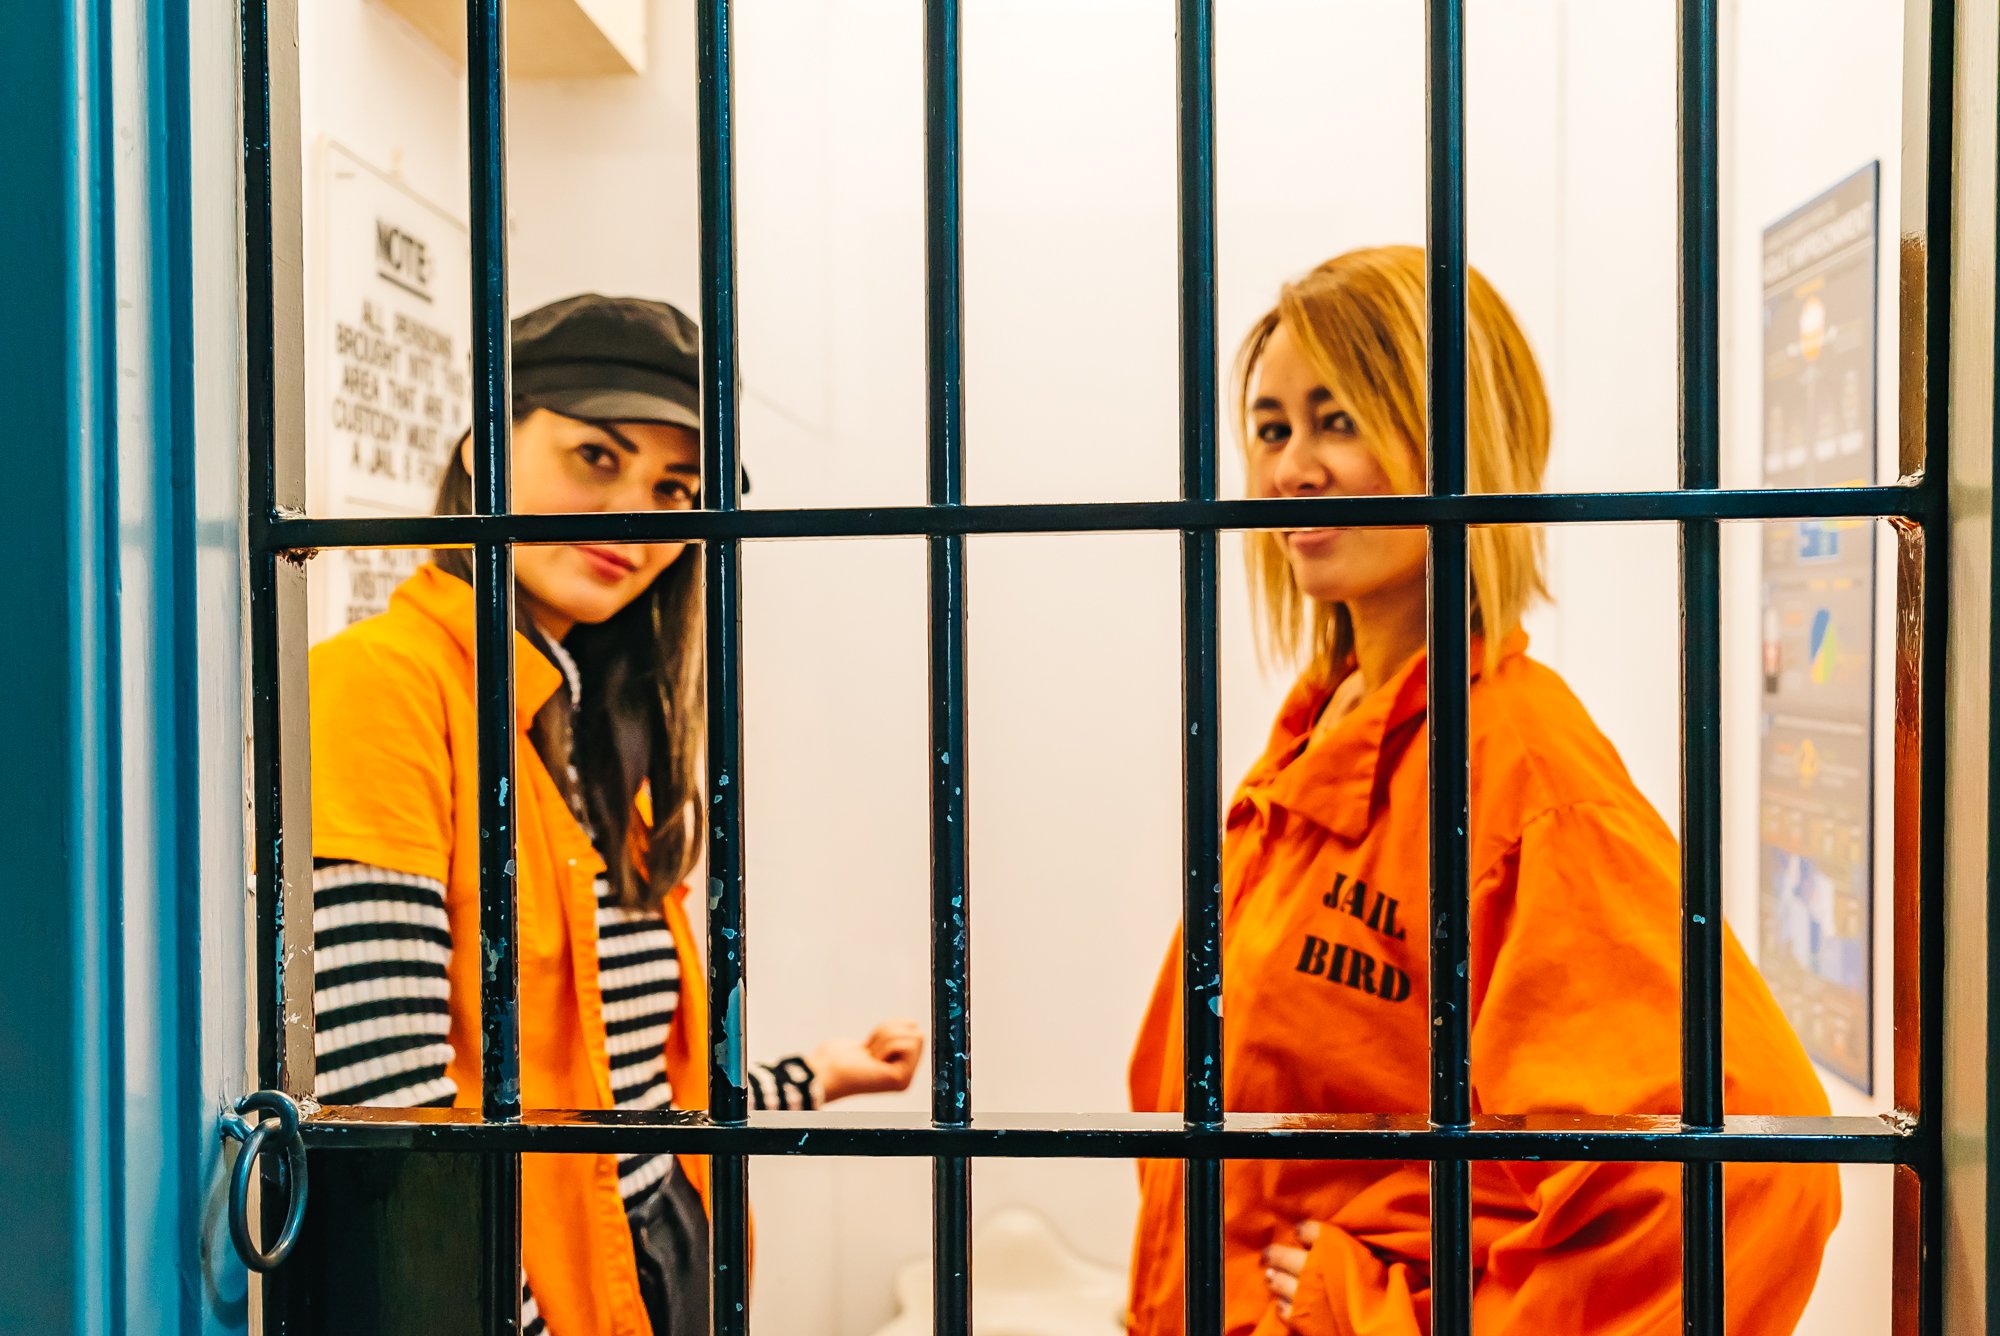 EXPERIENCING LIFE INSIDE A JAIL CELL